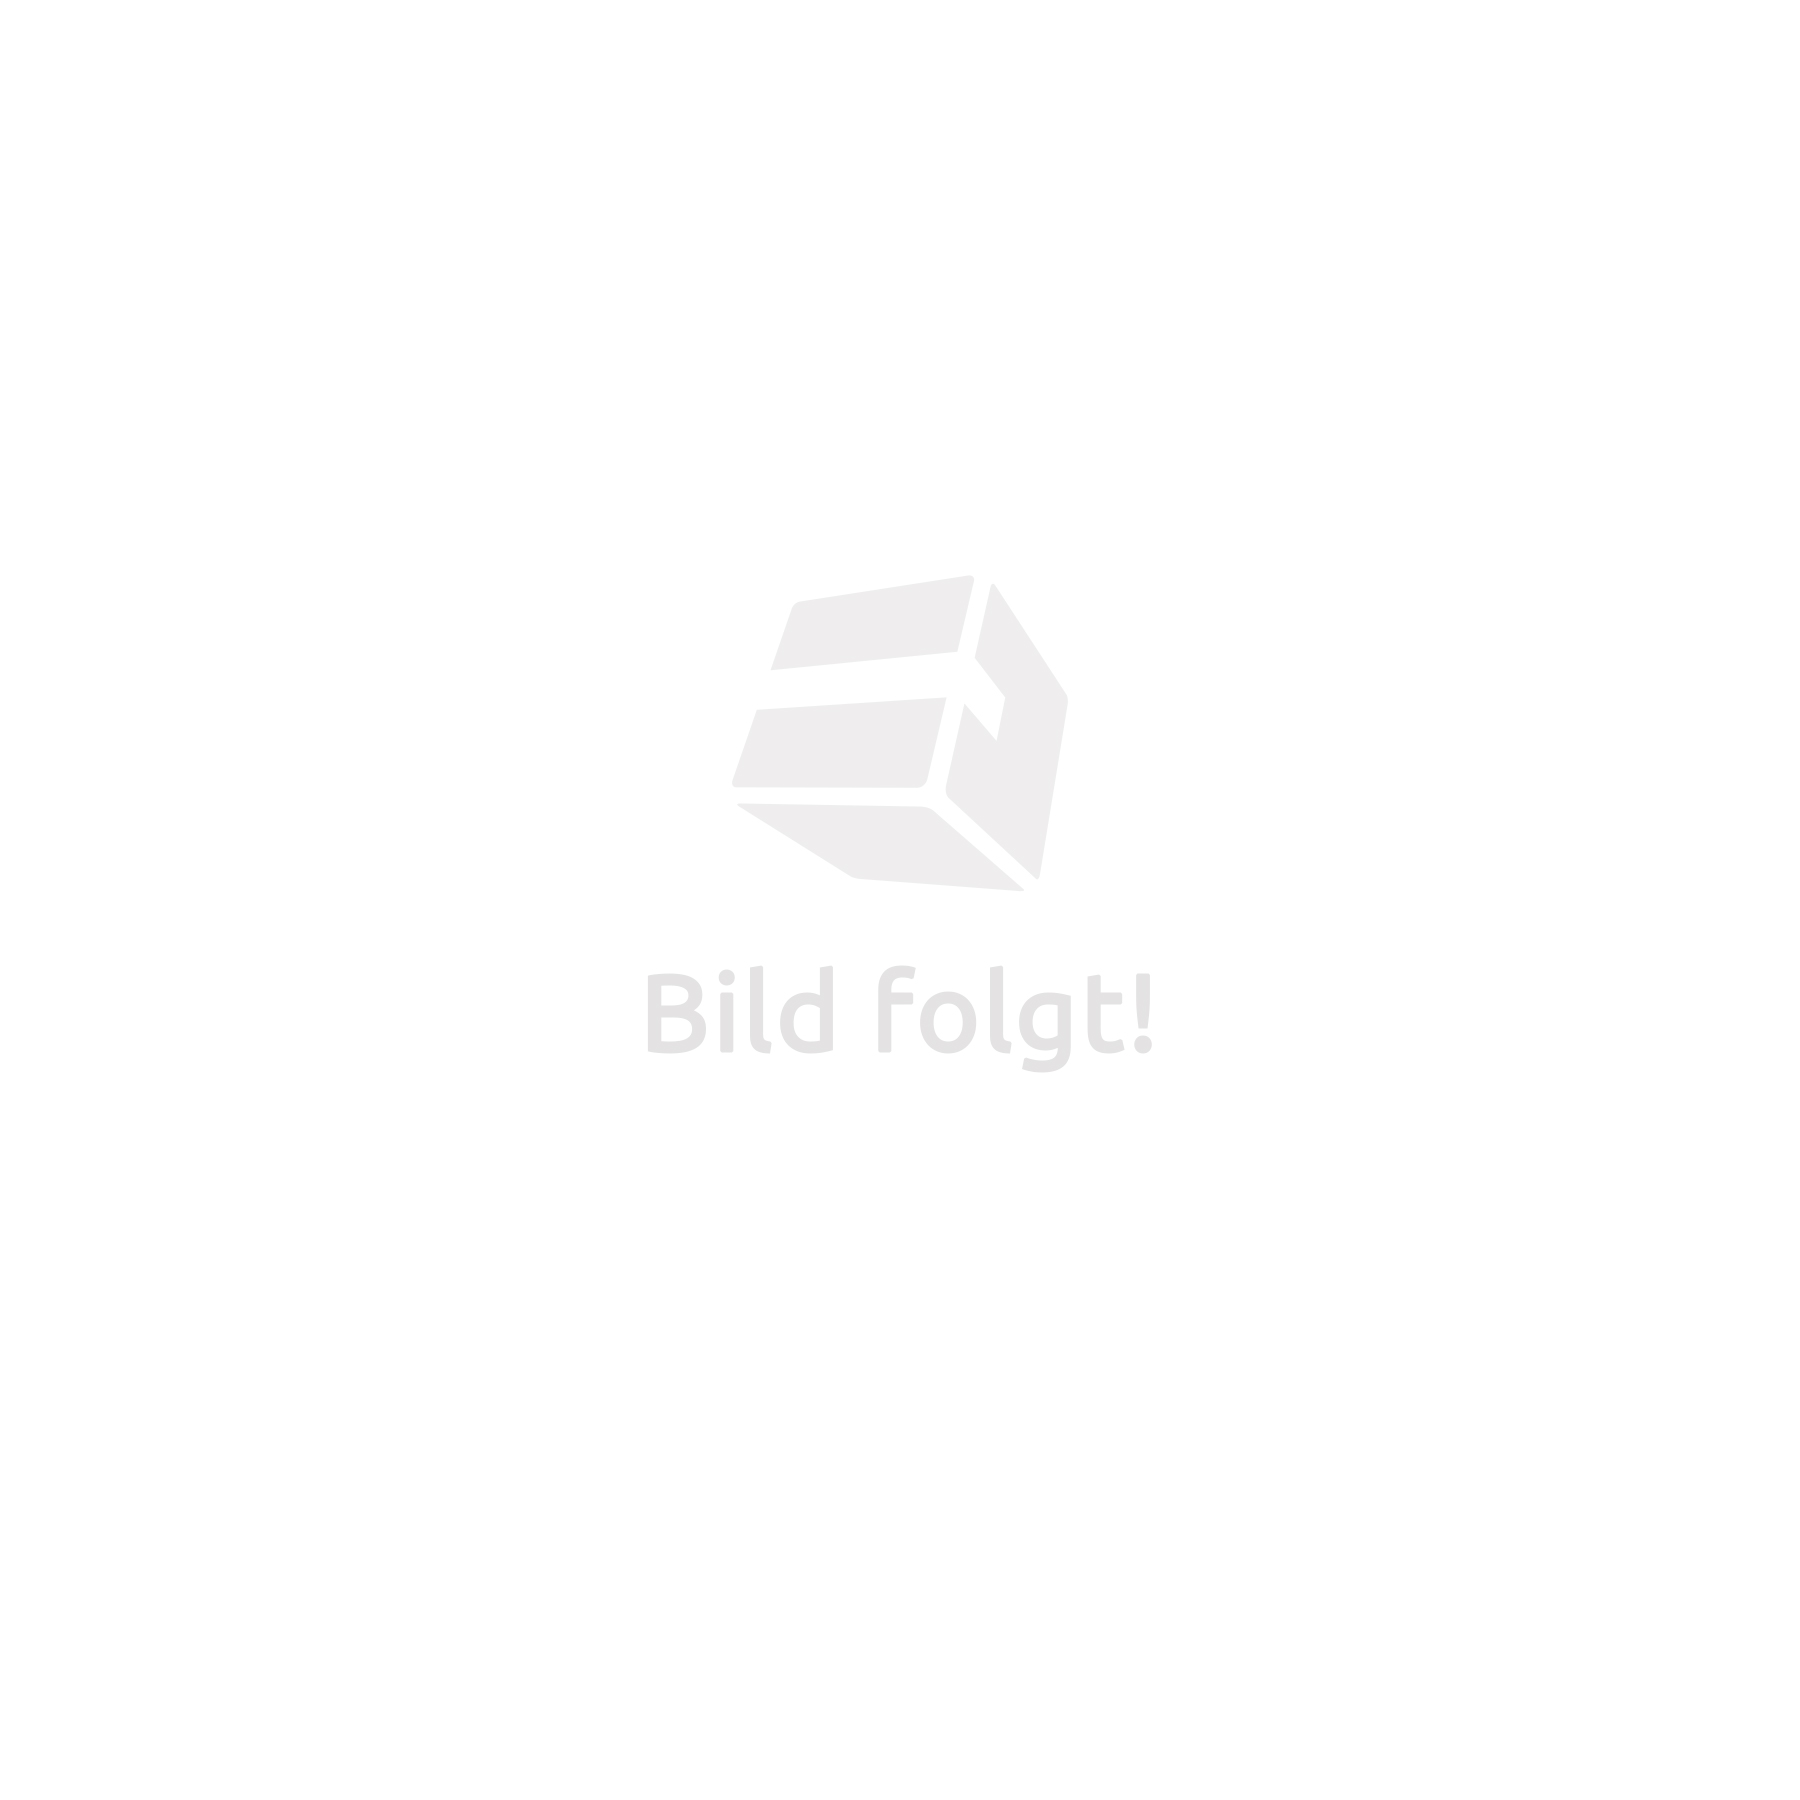 Tree pruner with cable and saw function